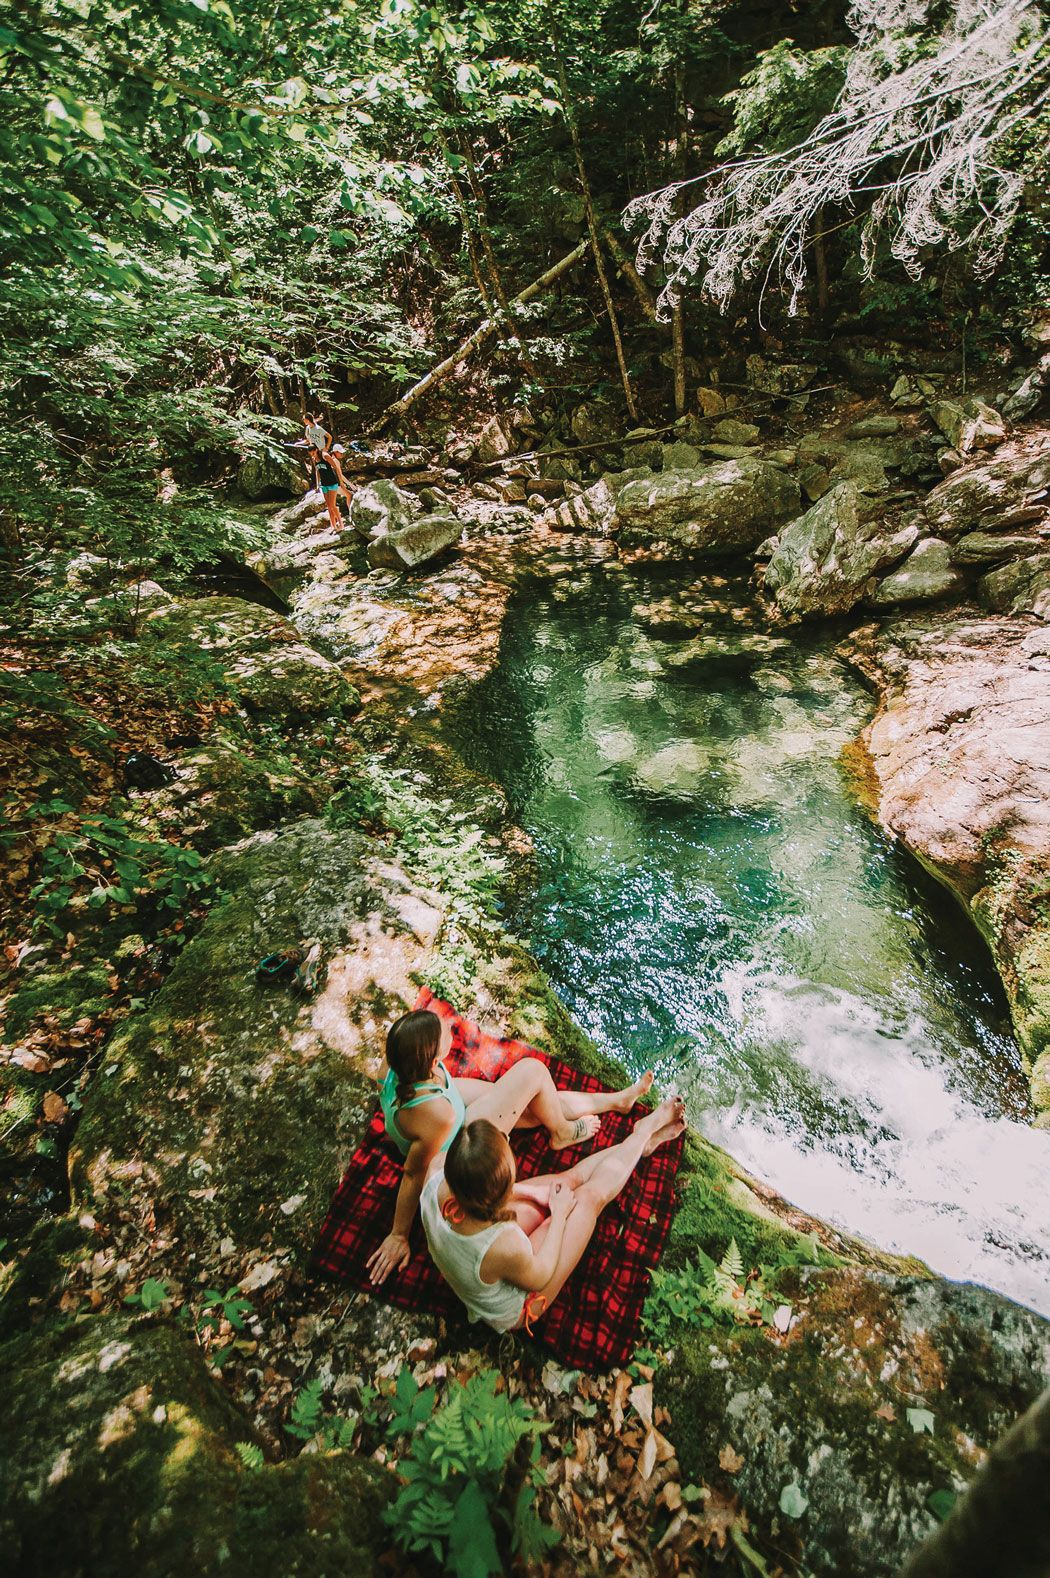 How to find maines 12 best swimming holes swimming